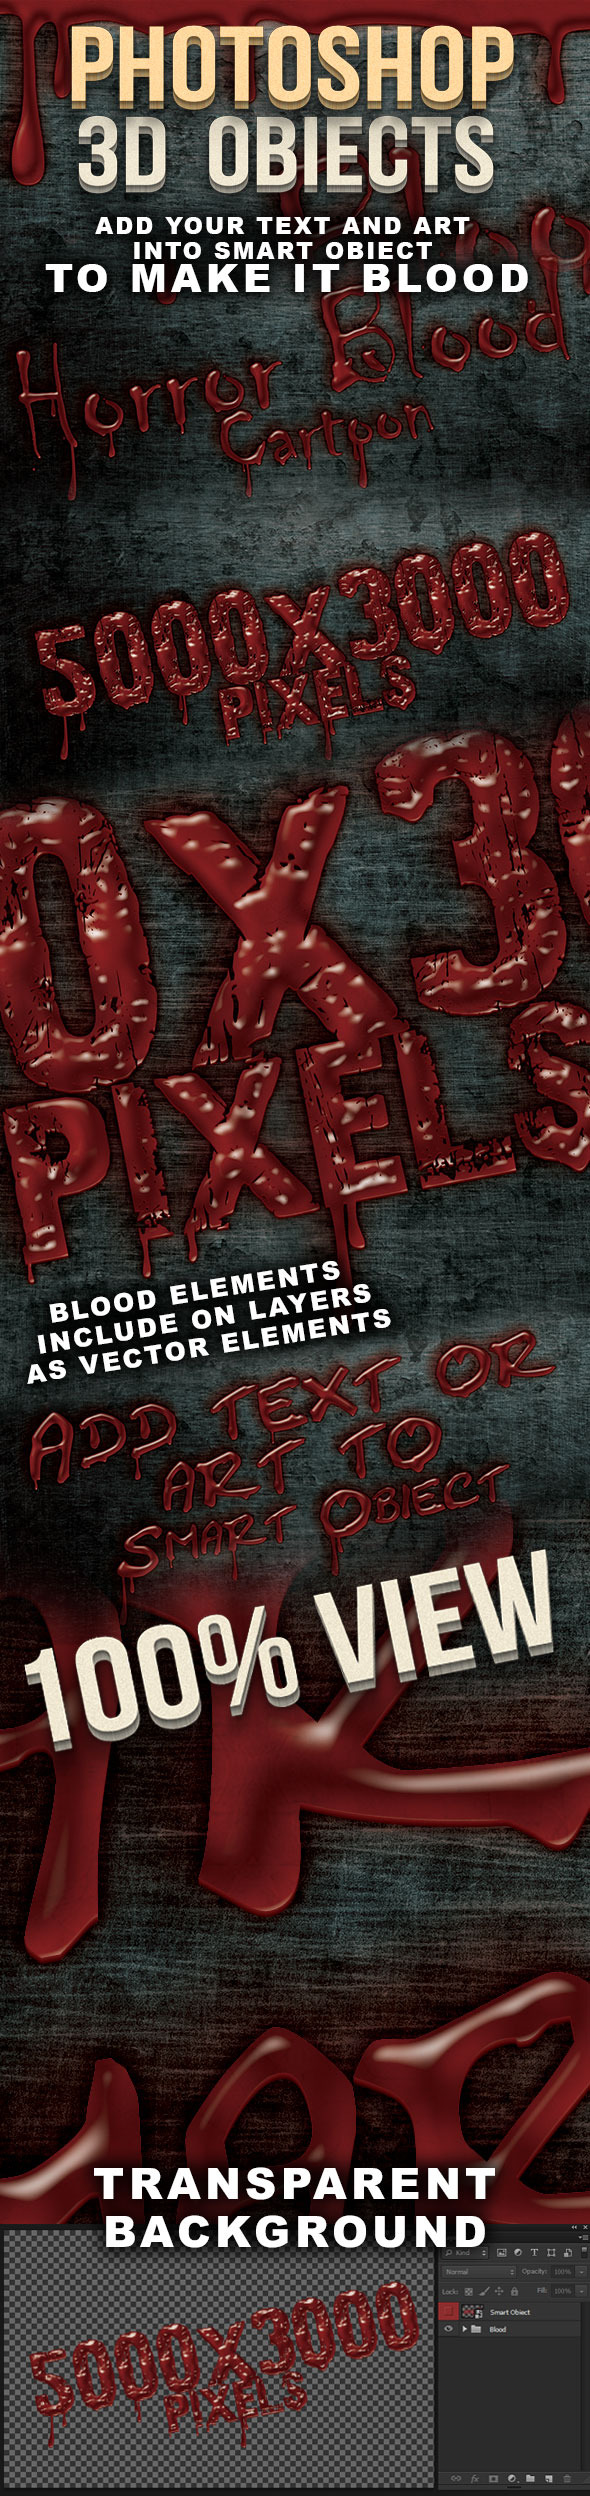 Blood 3D Photoshop Creator - Text Effects Actions